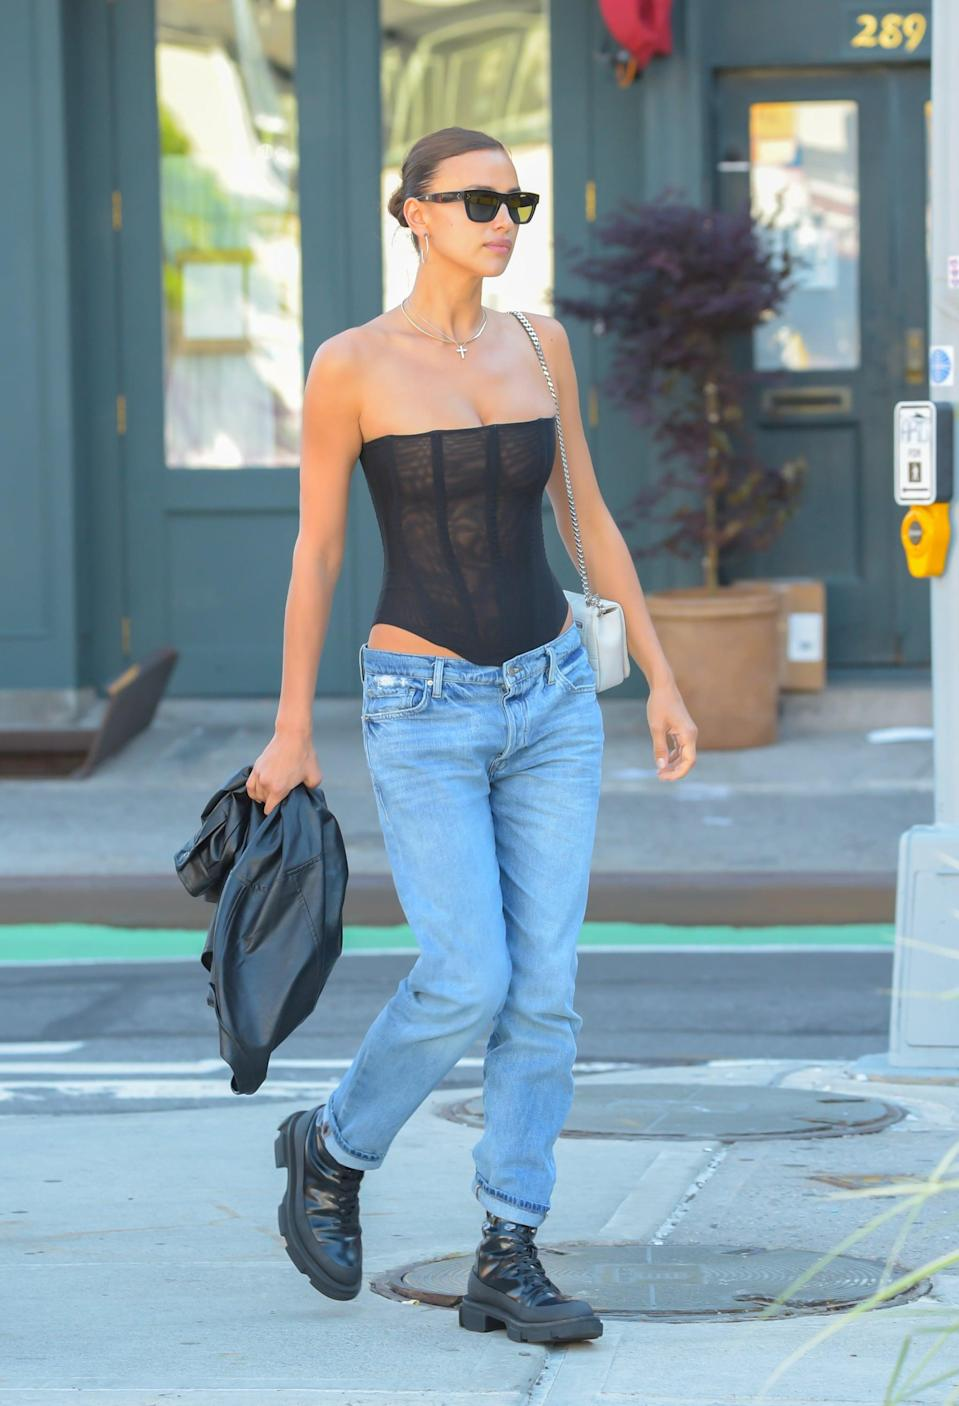 """<p>In <a href=""""https://www.popsugar.com/fashion/irina-shayk-corset-top-low-rise-jeans-outfit-48377172"""" class=""""link rapid-noclick-resp"""" rel=""""nofollow noopener"""" target=""""_blank"""" data-ylk=""""slk:an outfit"""">an outfit</a> that looks to be straight from the 2000s. </p>"""